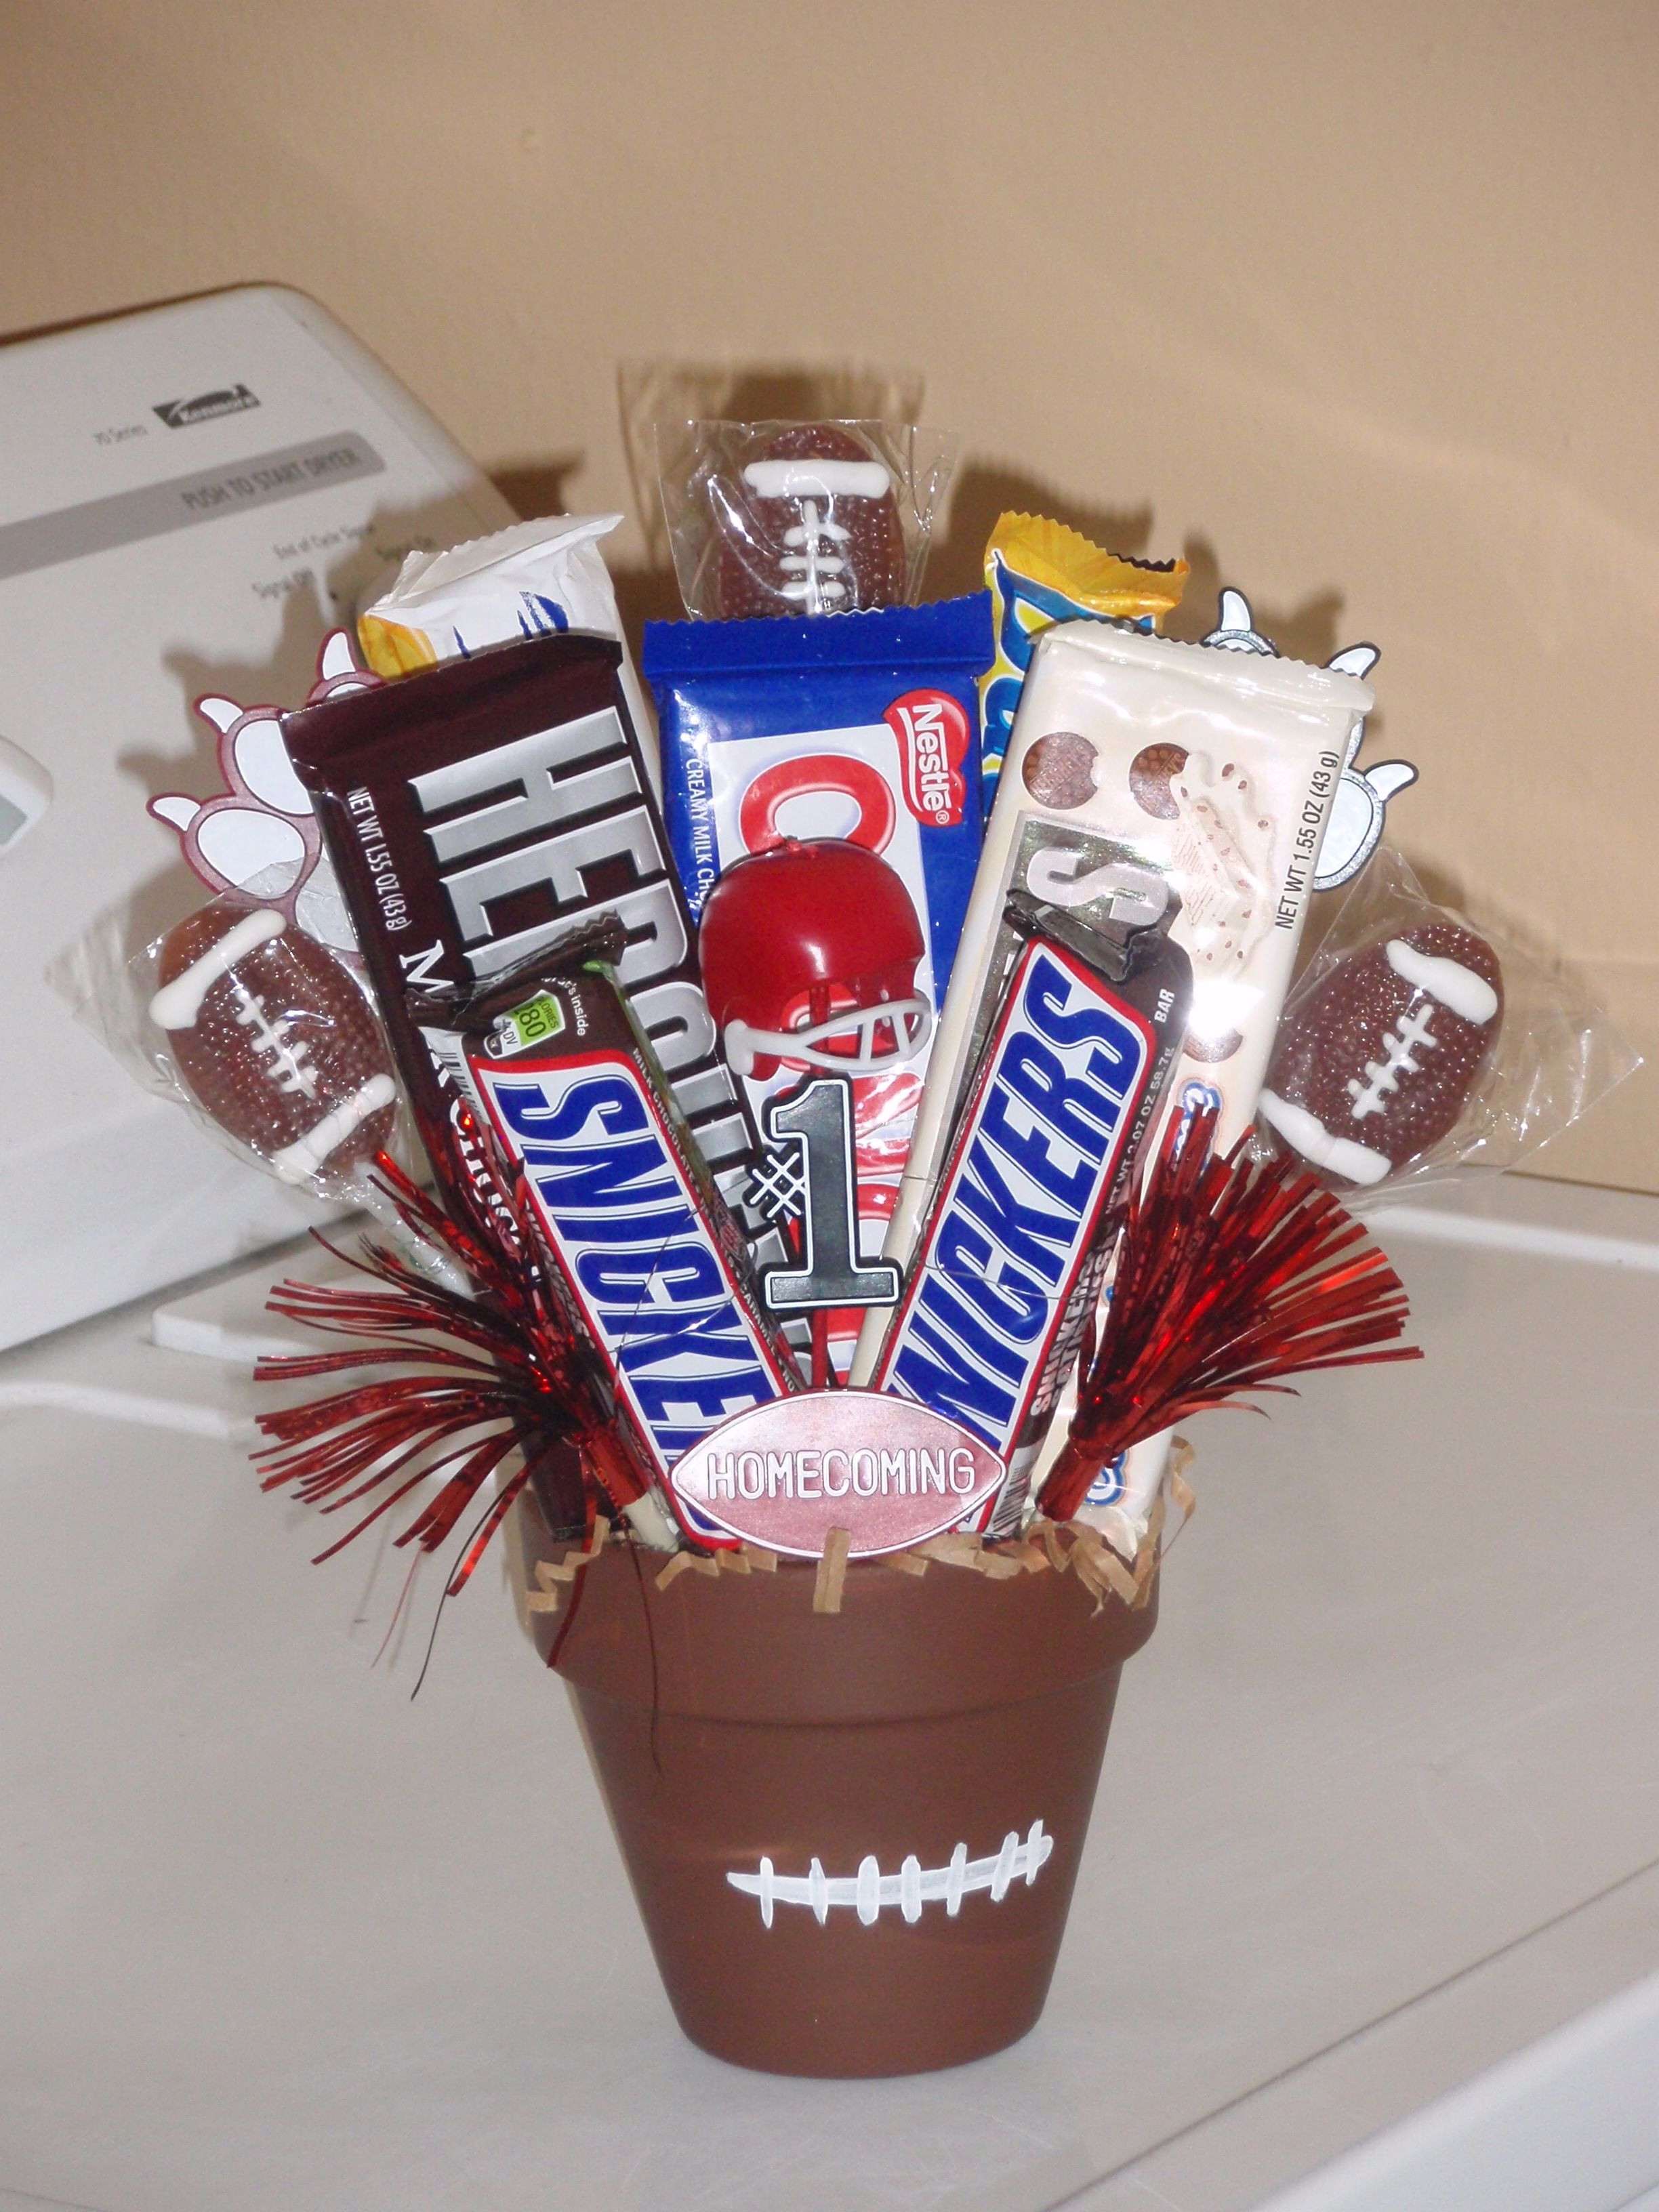 Best ideas about Youth Football Gift Ideas . Save or Pin Made this for a football player on Home ing Now.